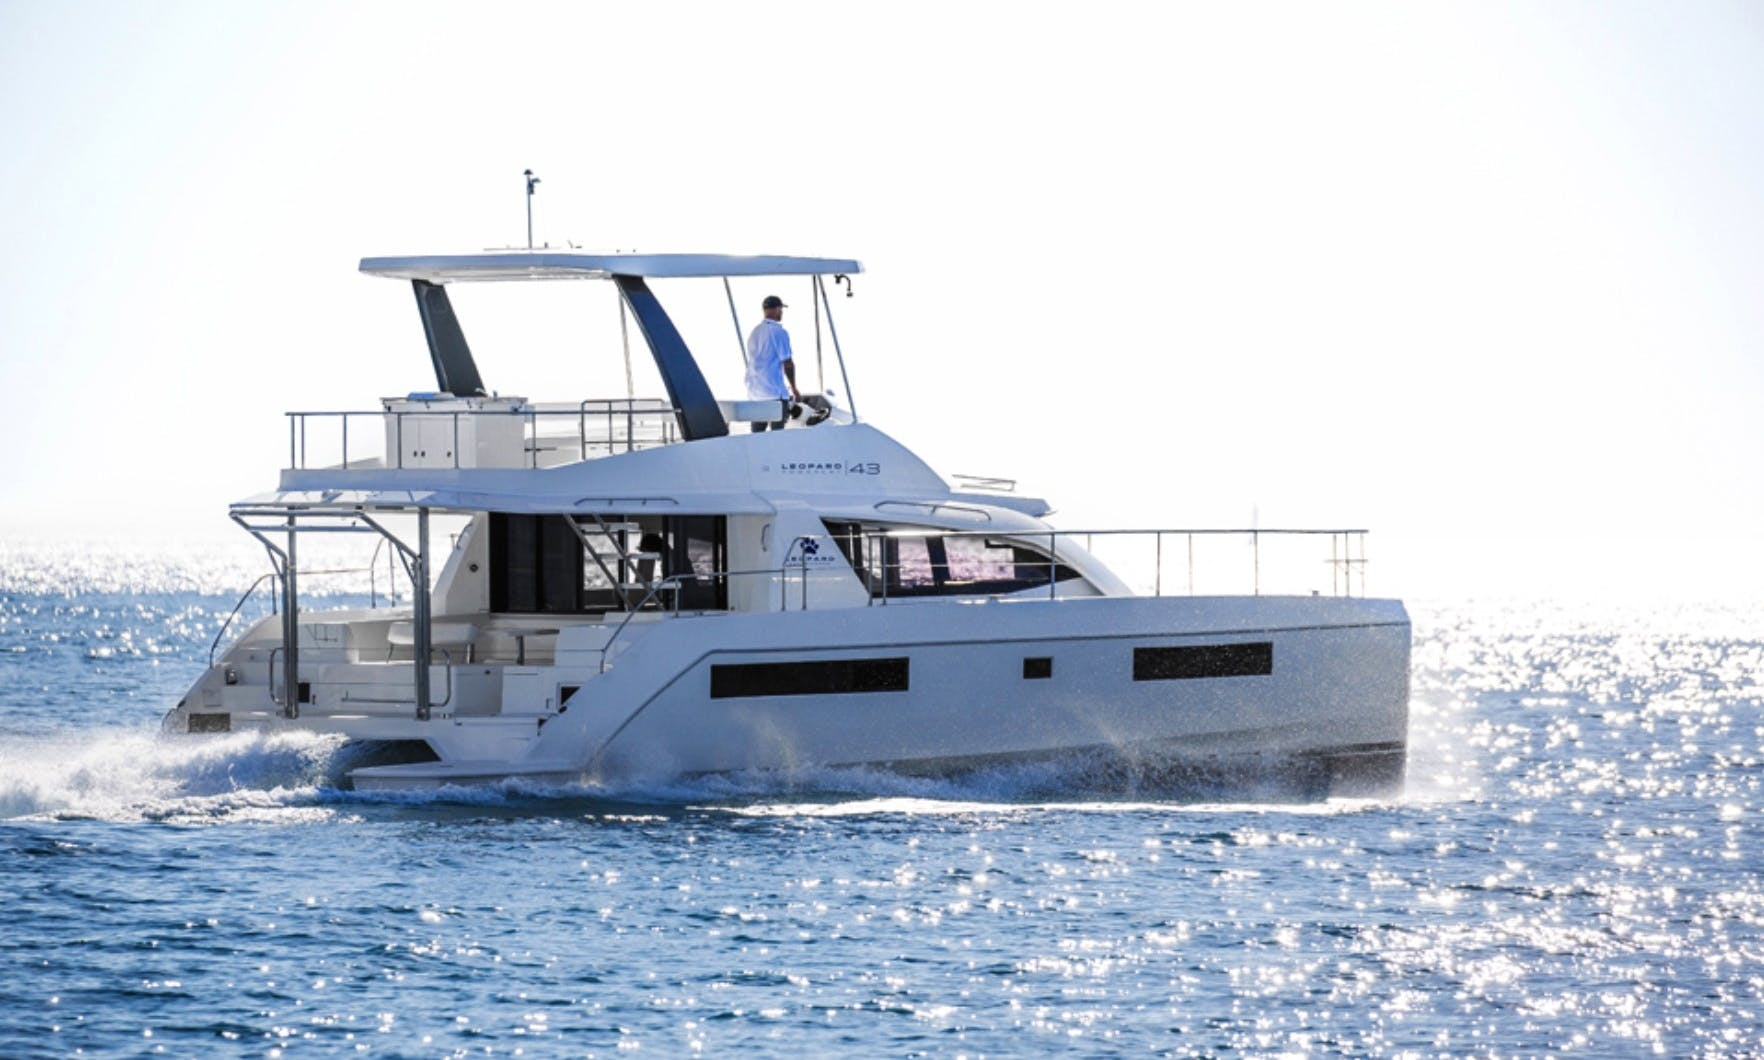 Leopard 43 PC Power Yacht Catamaran in Cartagena, Colombia